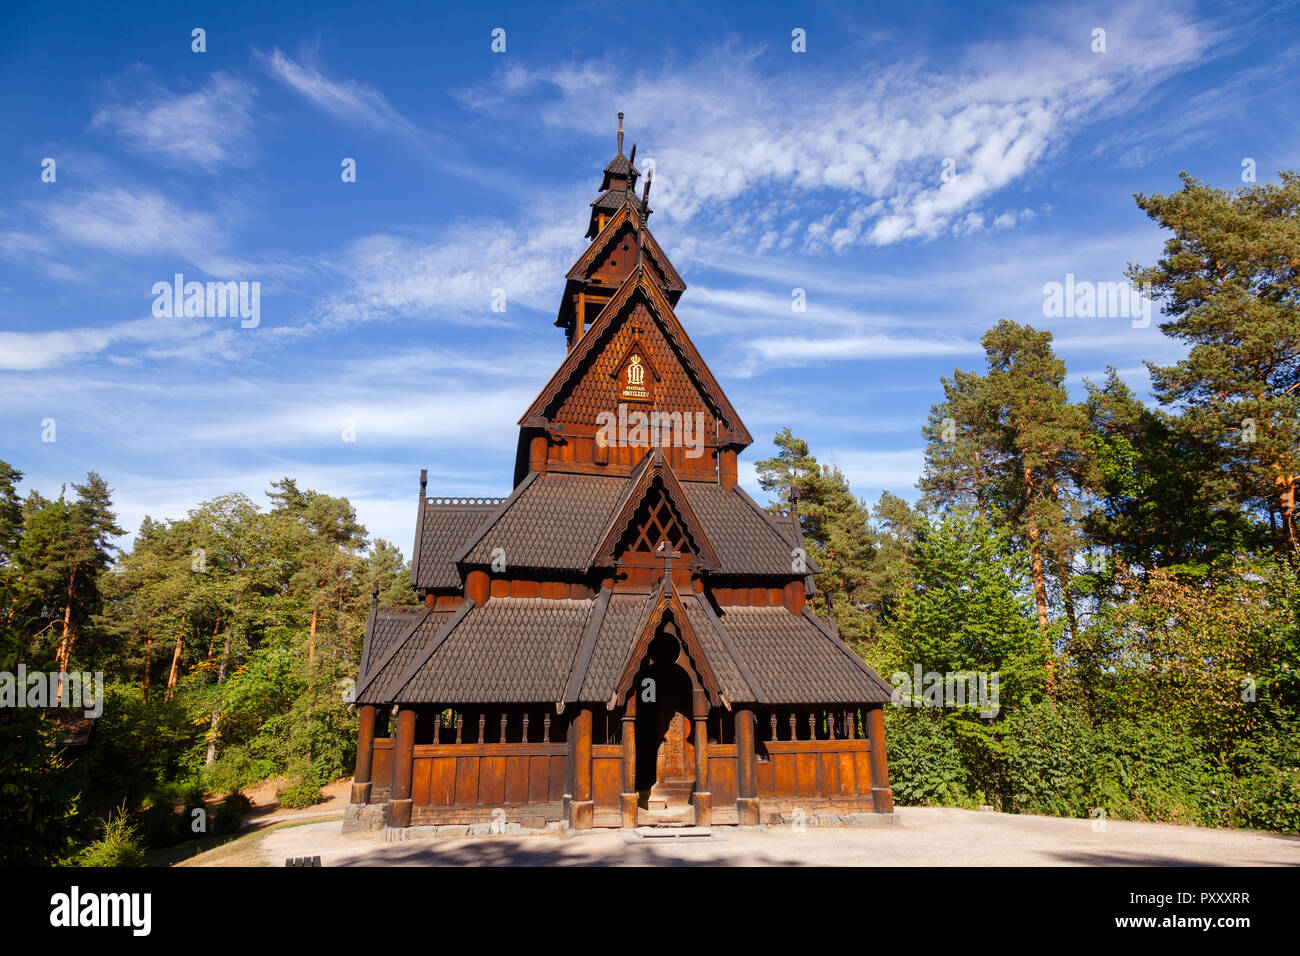 Reconstructed wooden Gol Stave Church (Gol Stavkyrkje) in Norwegian Museum of Cultural History at Bygdoy peninsula in Oslo, Norway, ScandInavia - Stock Image